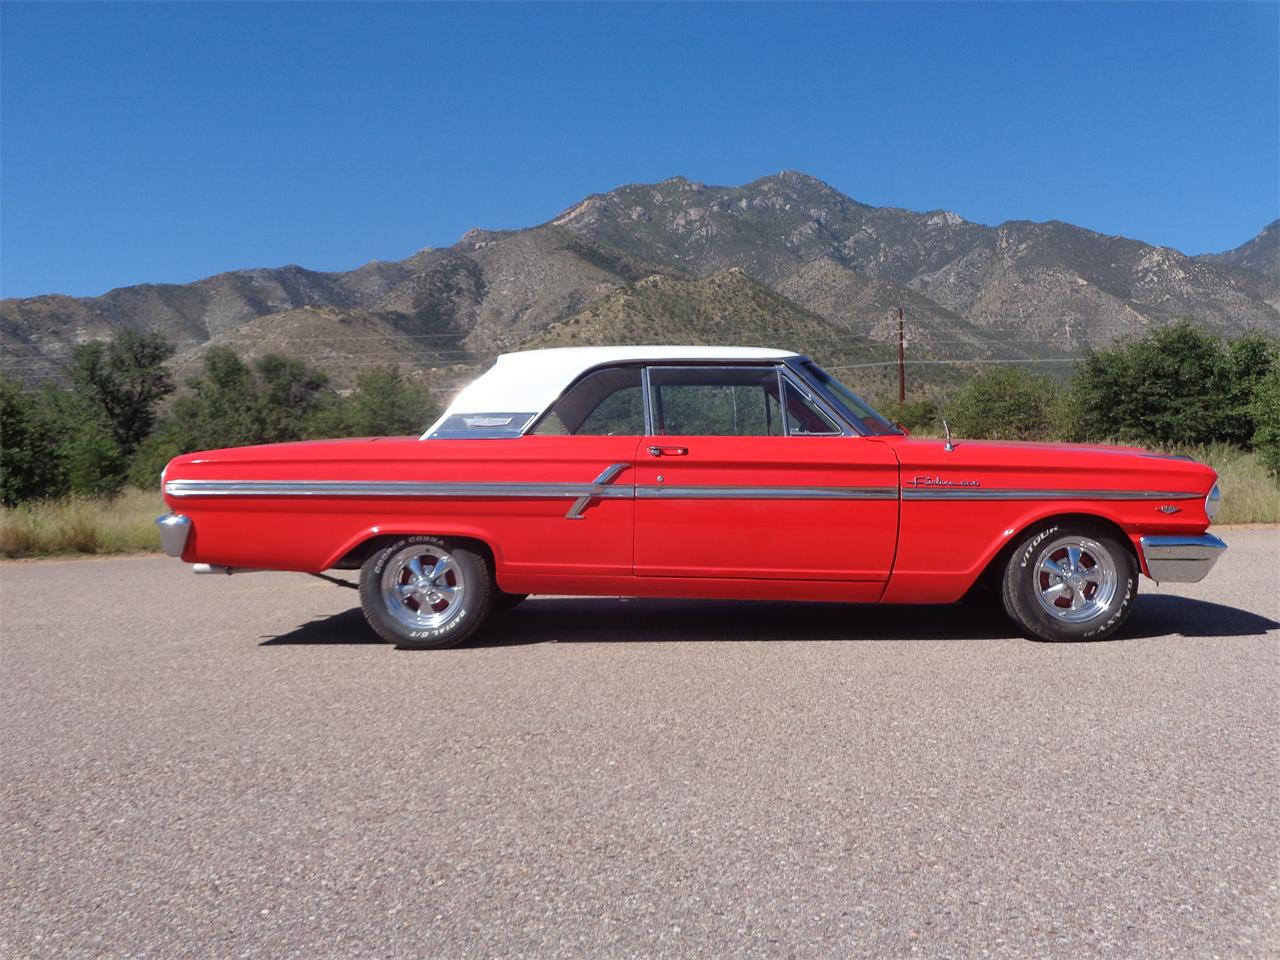 Large Picture of '64 Ford Fairlane 500 - $16,000.00 Offered by a Private Seller - OWO7